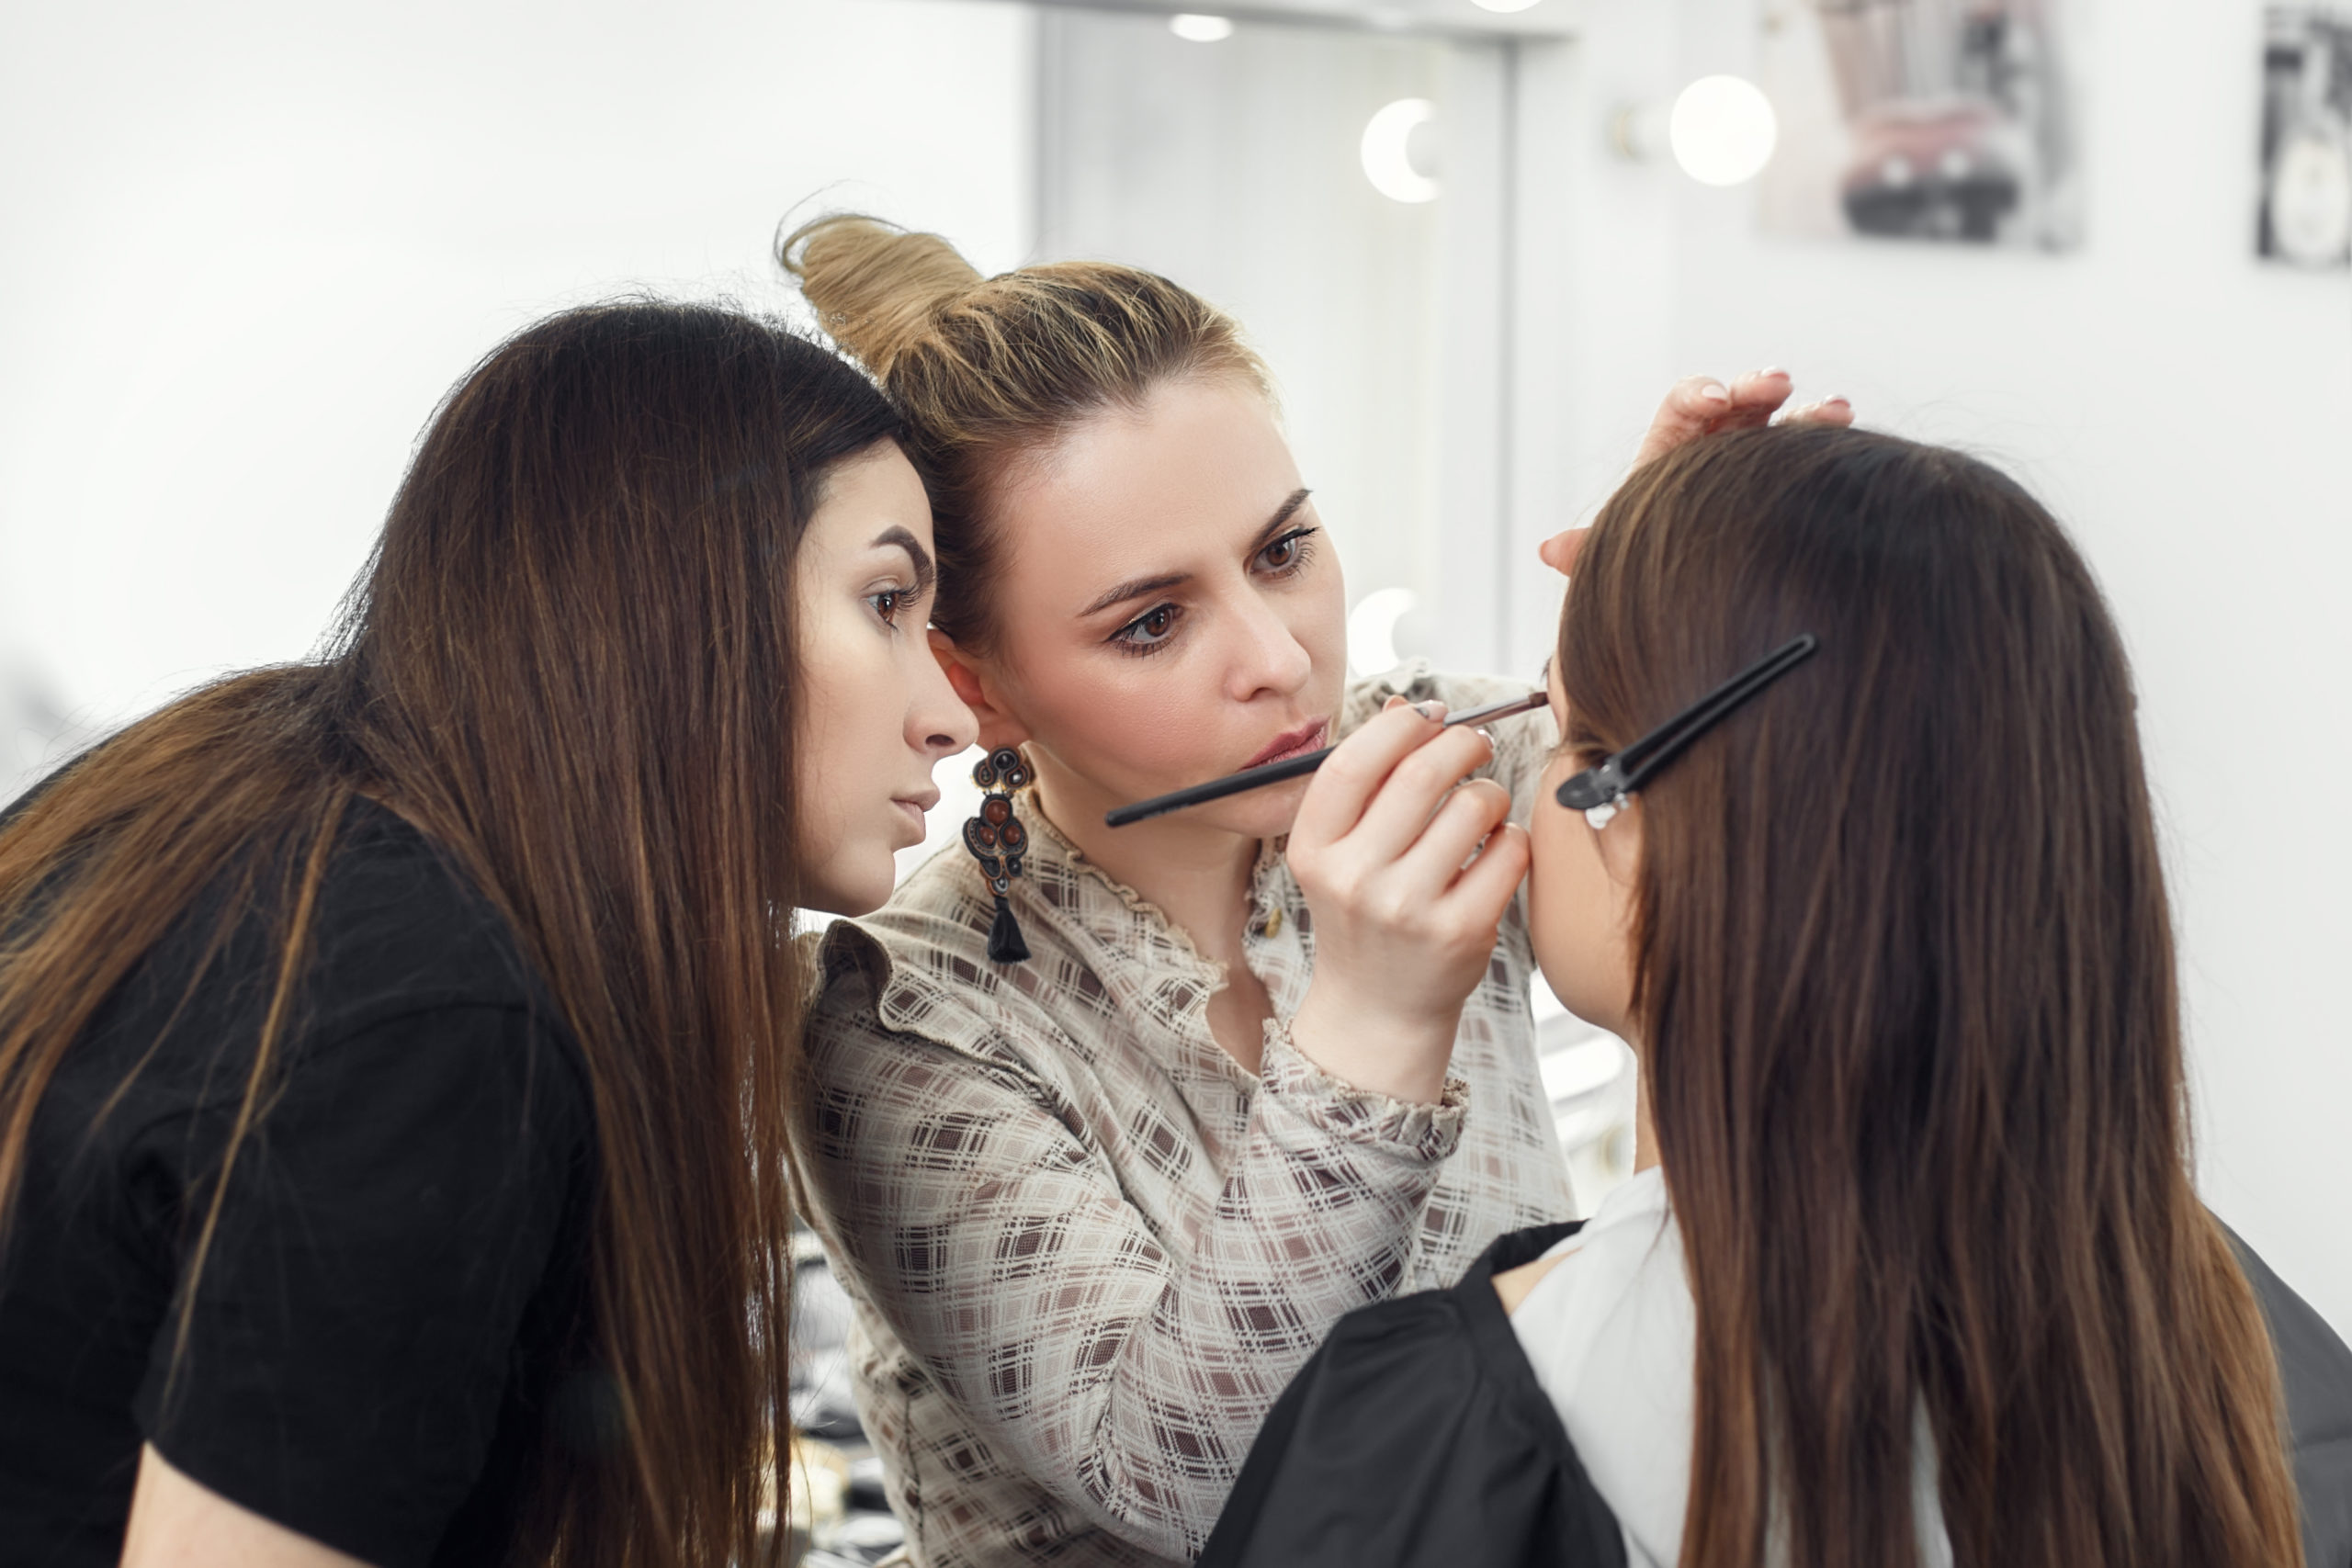 cosmetologist - 5 reasons its the right career for you